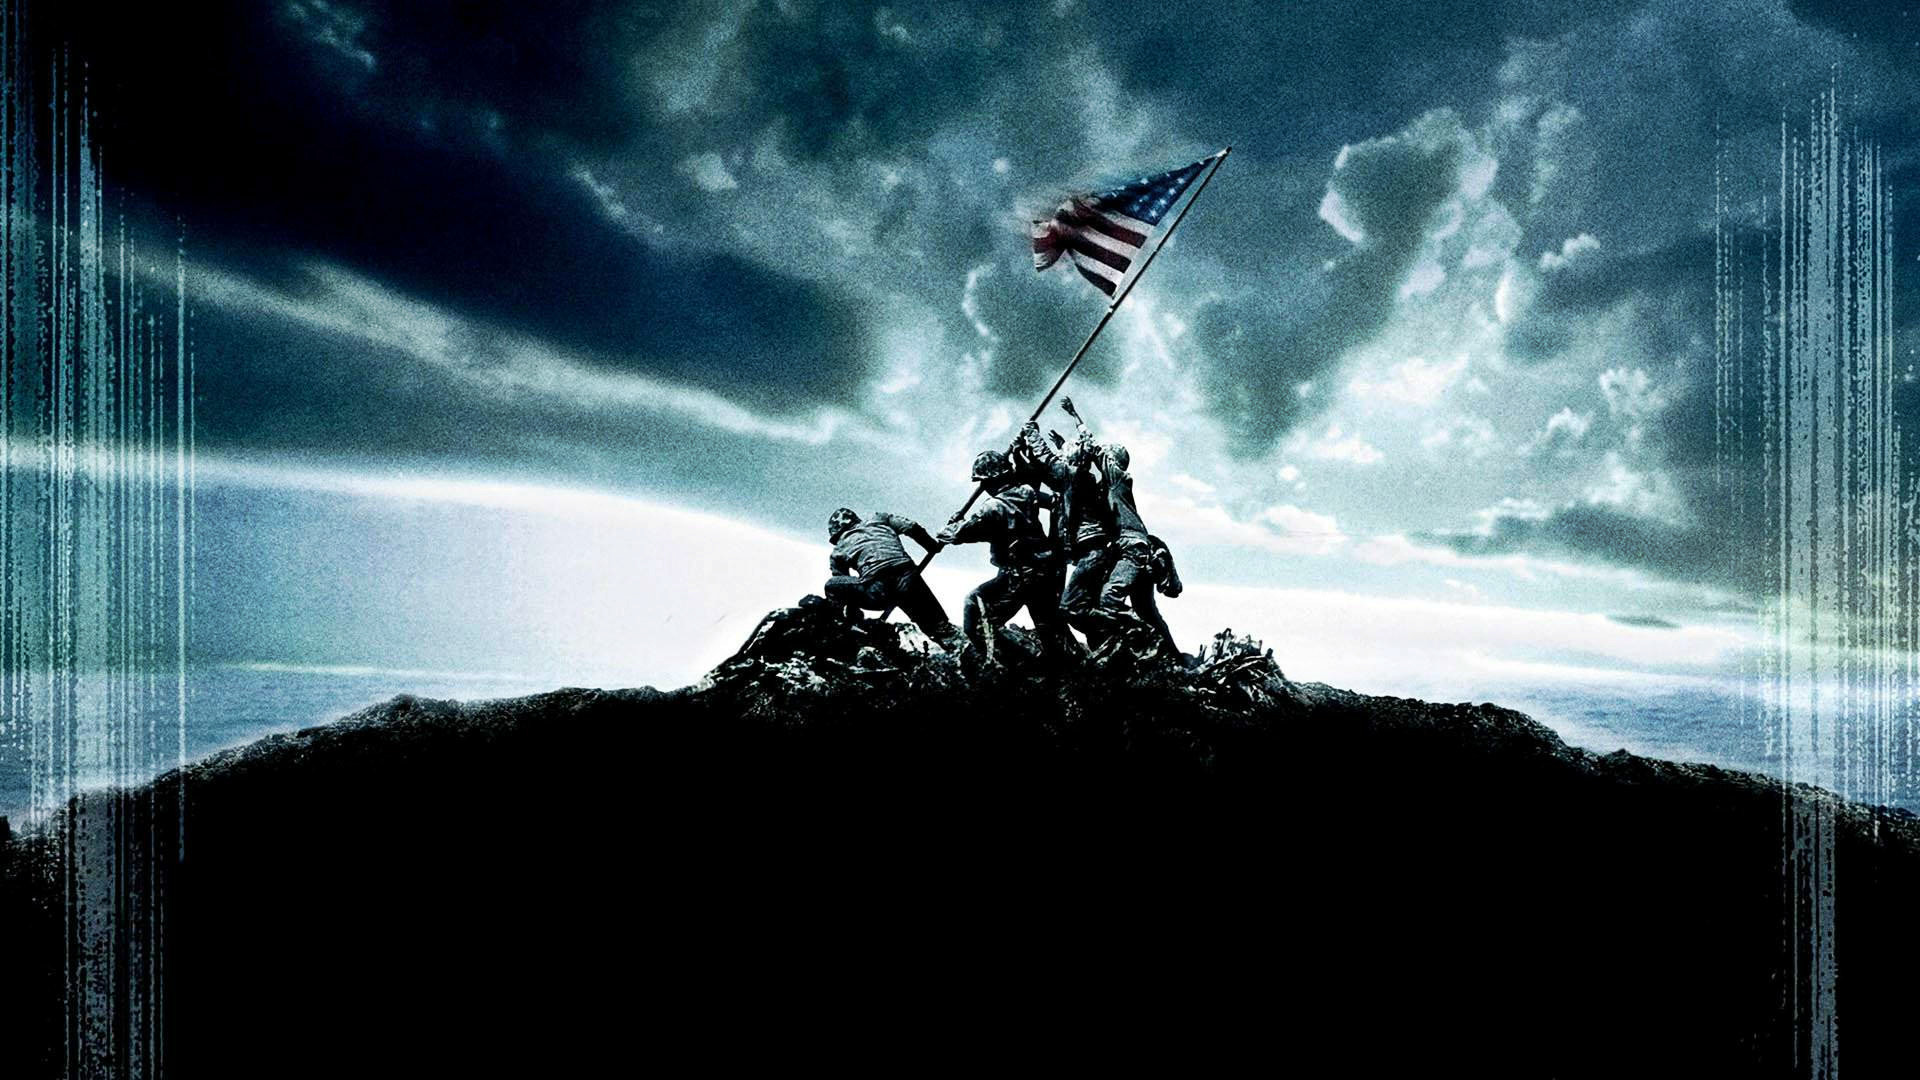 Marine Corps Wallpaper And Screensavers 53 Images